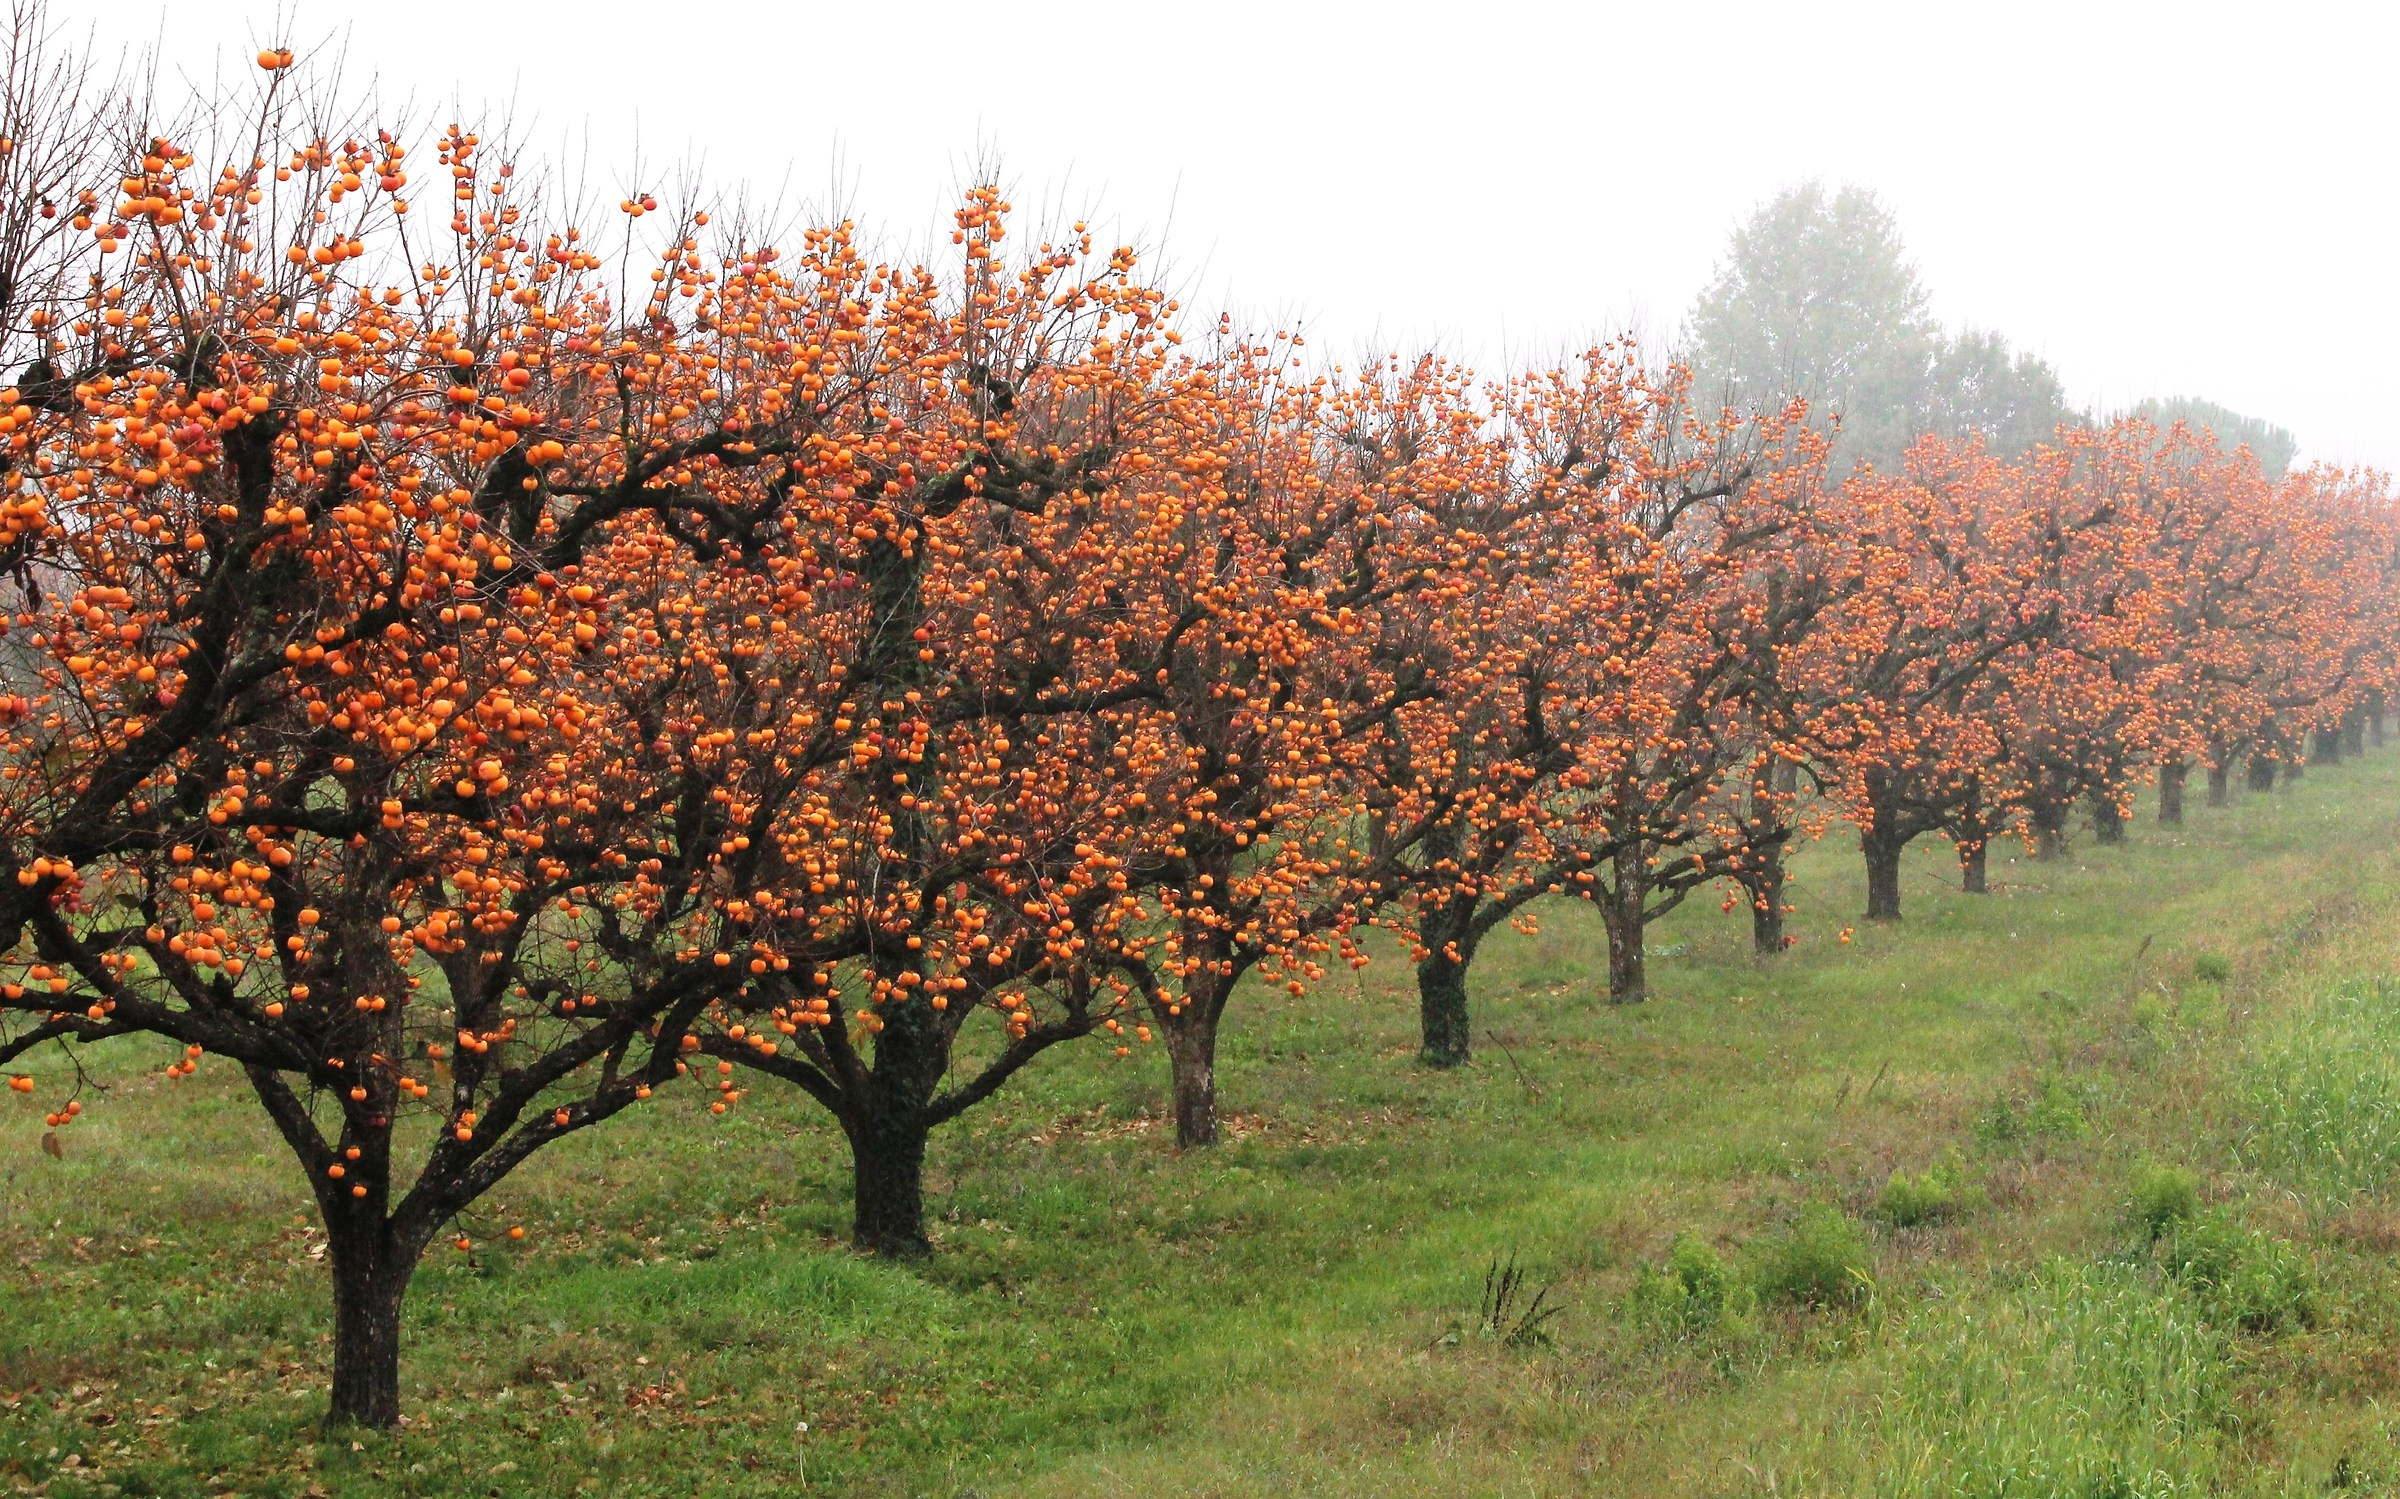 The country of persimmon ......